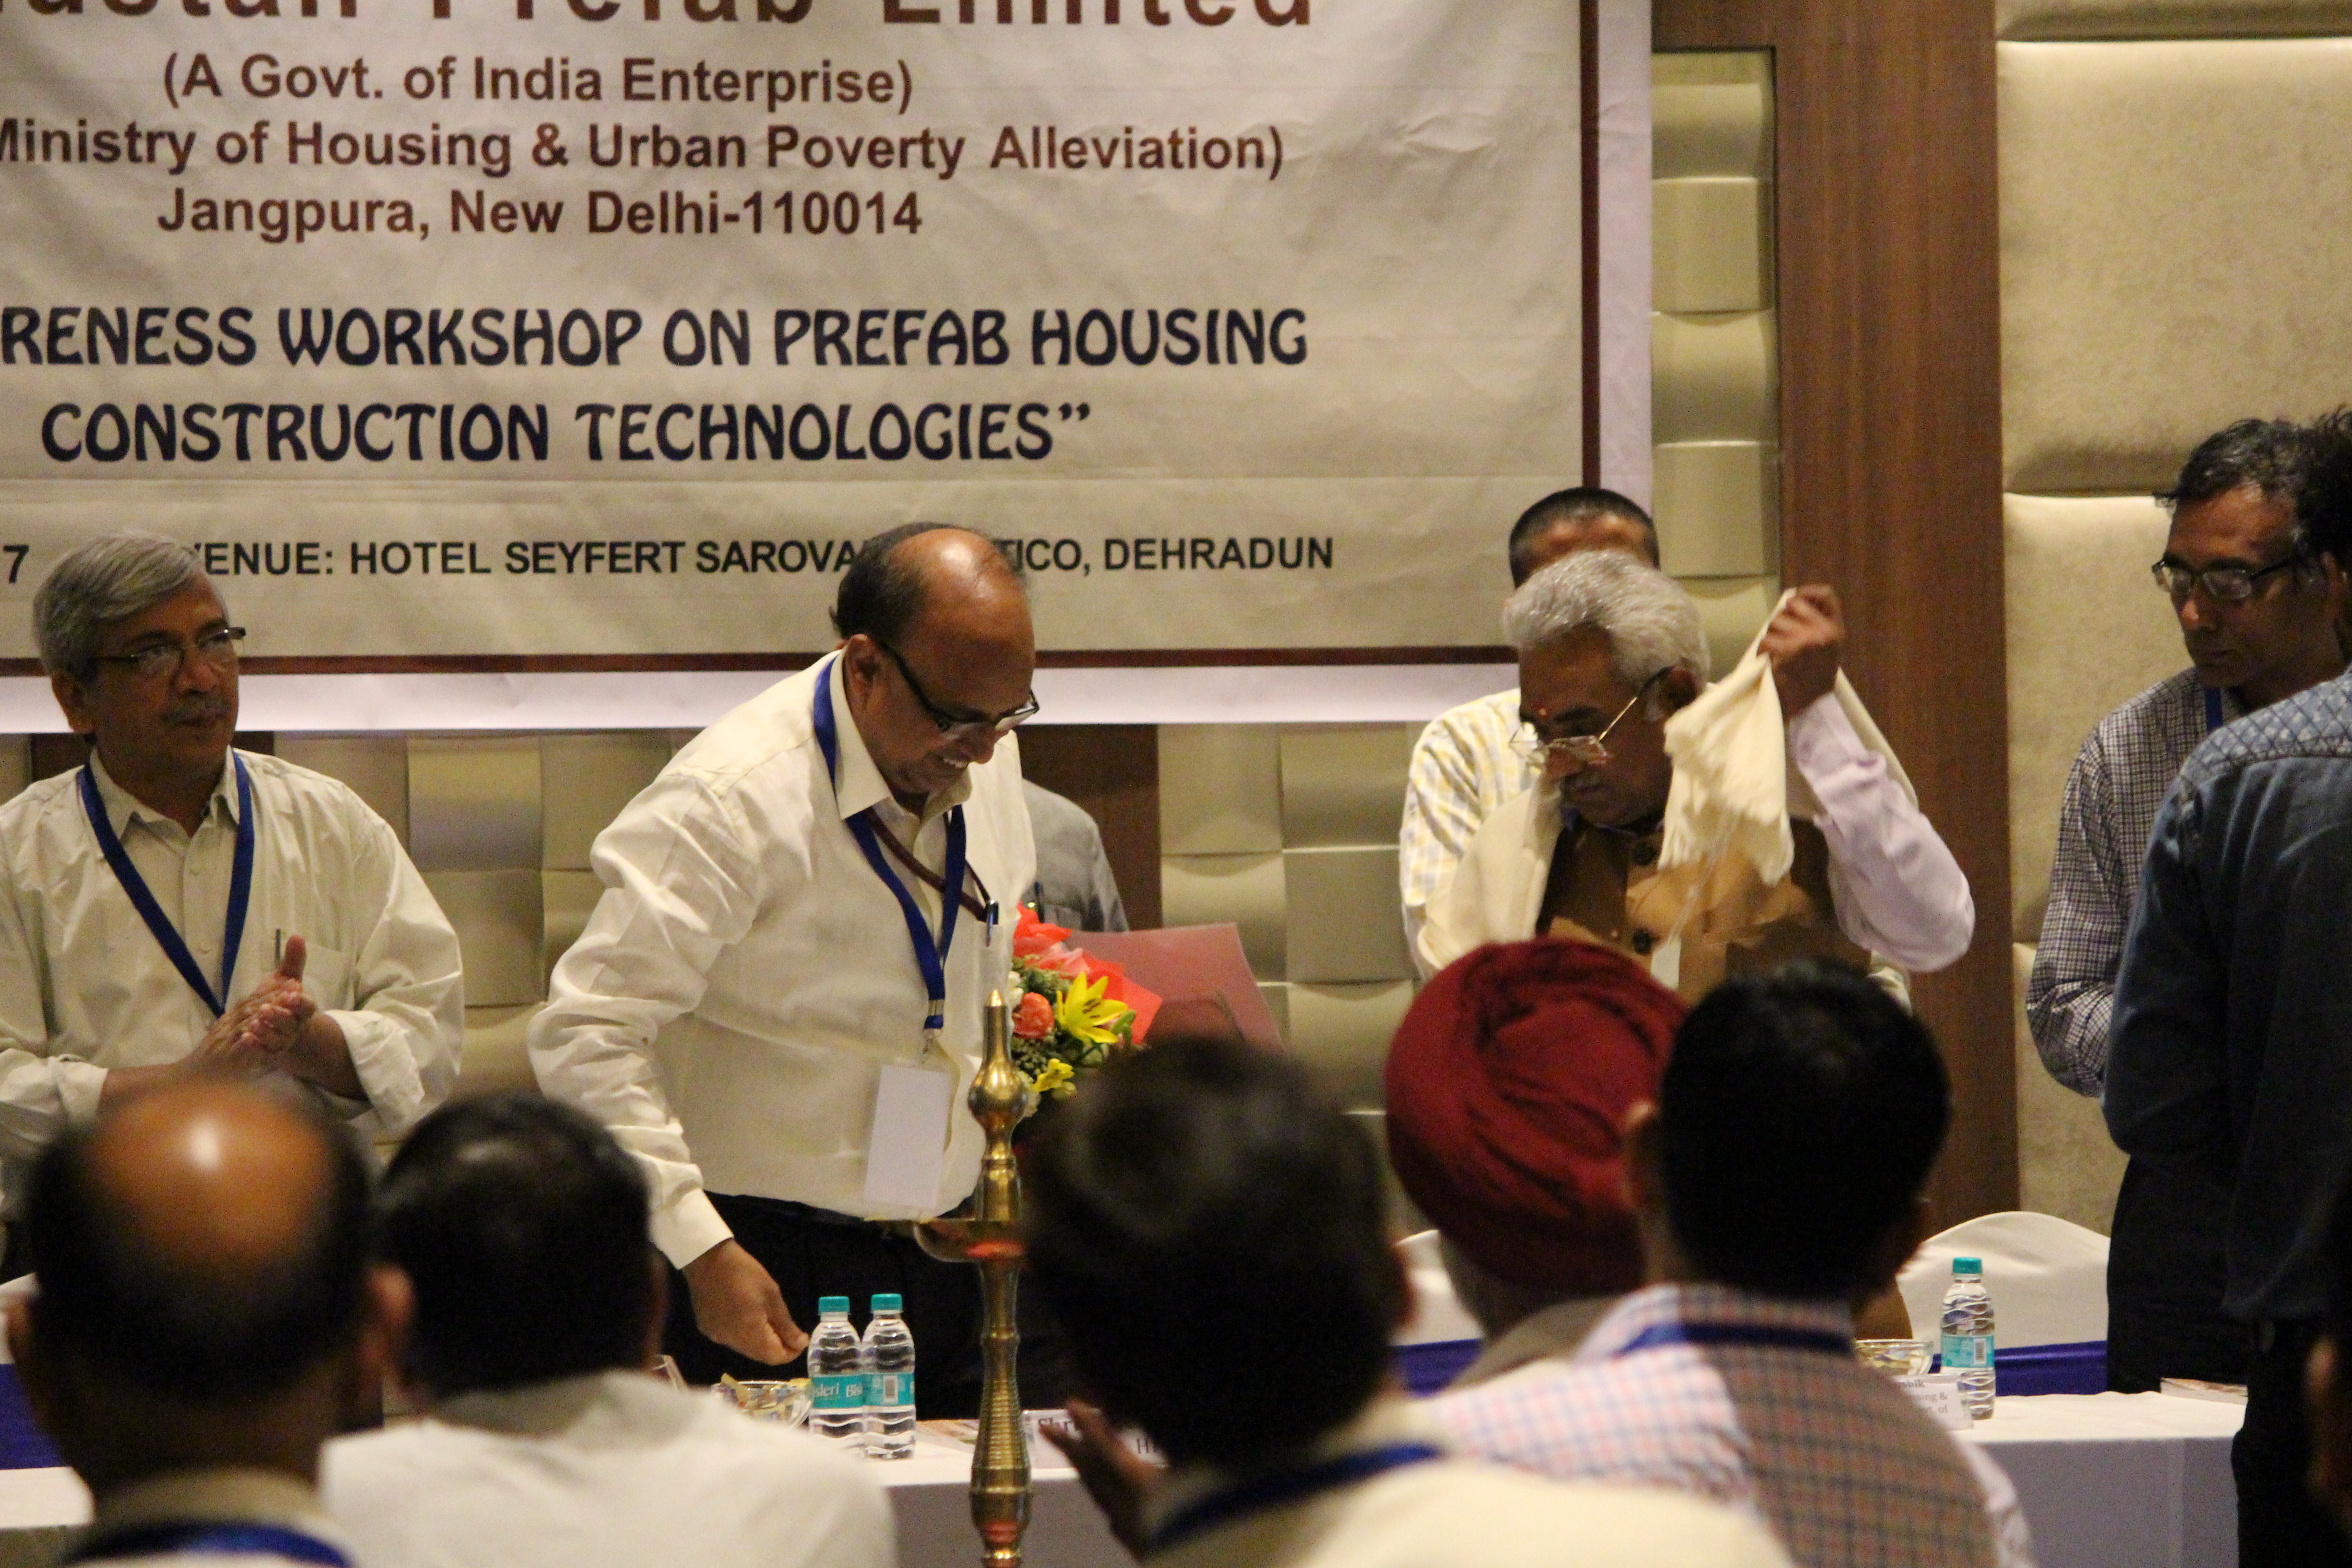 "HPL organized a one dayAwareness workshop on prefab housing construction technologies under the Prime Minister scheme ""Housing for All by 2022"" on 12th May, 2017 at Hotel SeyfertSarovar Portico, Dehradun. The event received very enthusiastic response. Over 115 Delegates from various prefab construction industries, Govt. Bodies, Research & Academic institutionsparticipated in the event. Sh. Madan Kaushik, Honourable Minister of Housing & Urban Development, Govt. of Uttarakhand inaugurated the workshop."